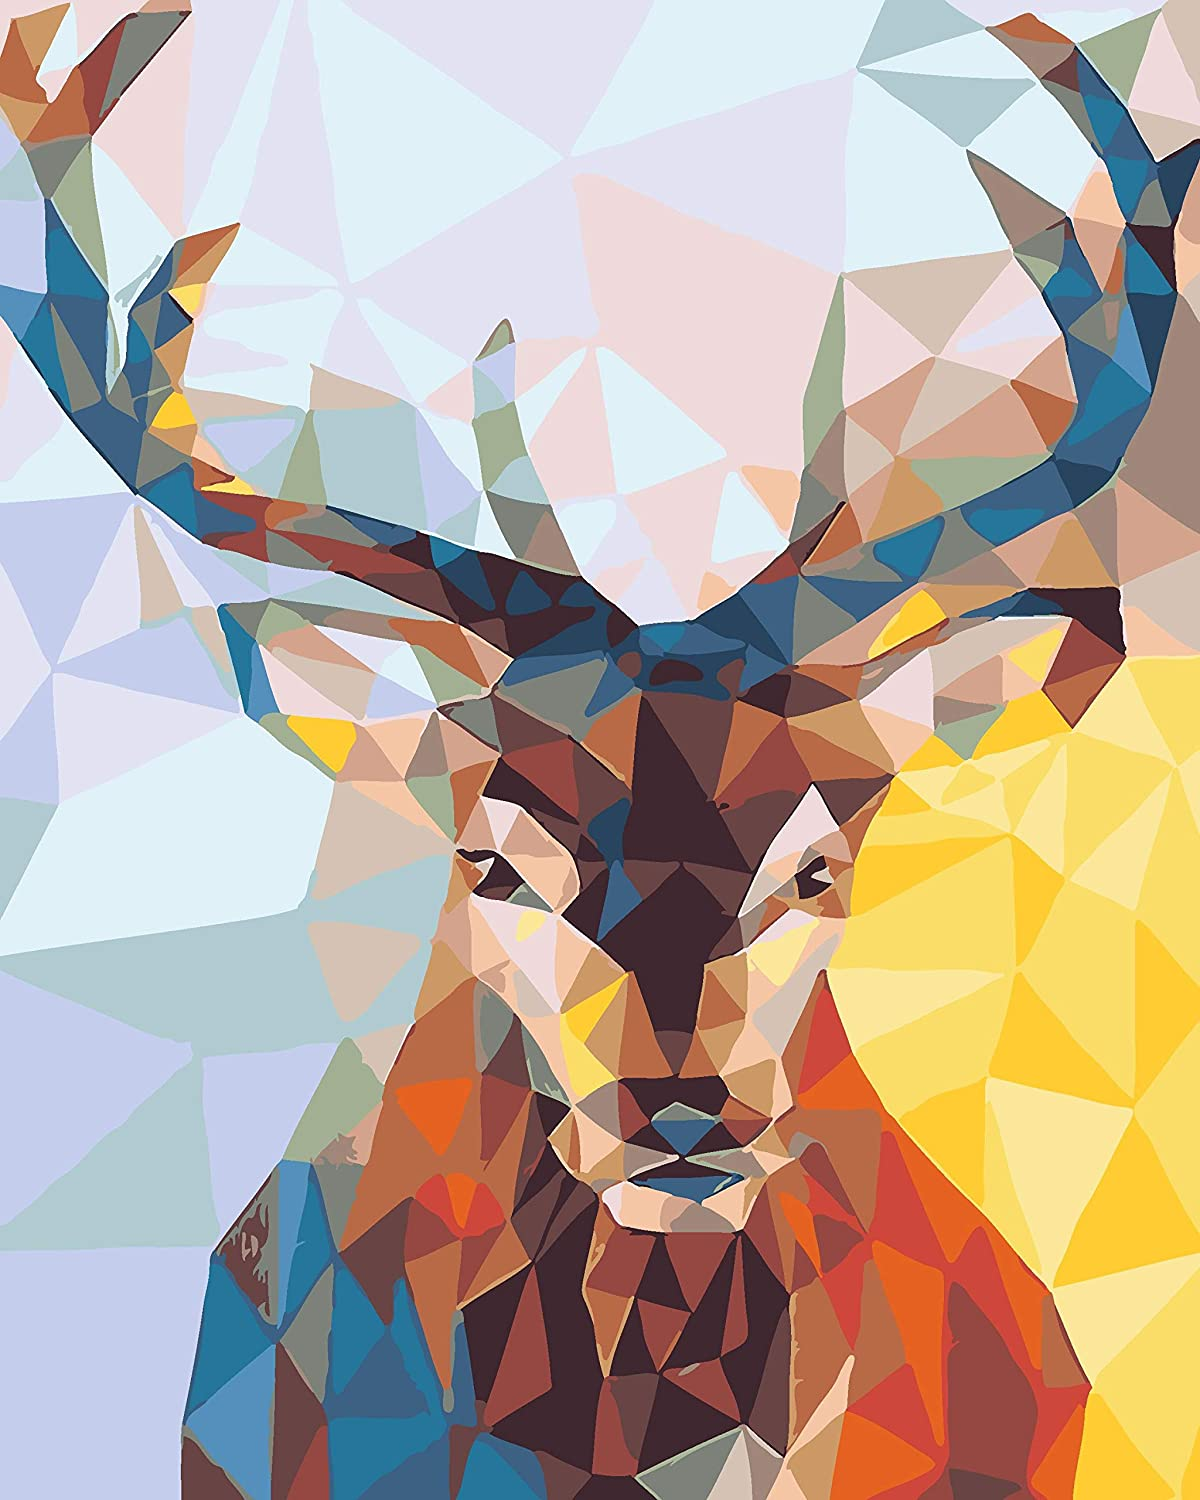 Painting by numbers kit for adults and teens choice of design Carrot the Reindeer